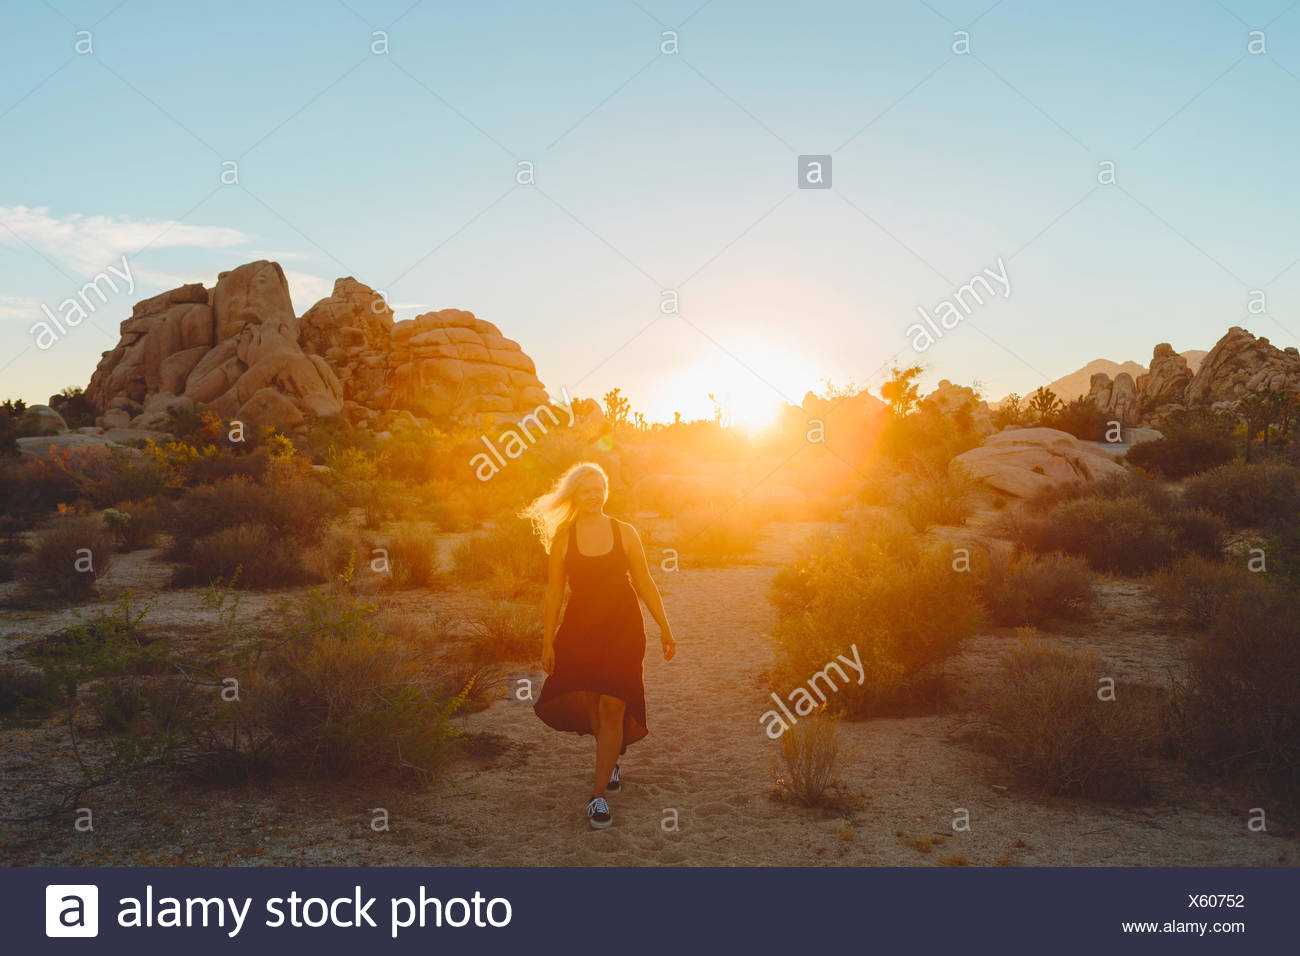 USA, California, Joshua Tree National Park, Woman wearing dress hiking at sunset - Stock Image